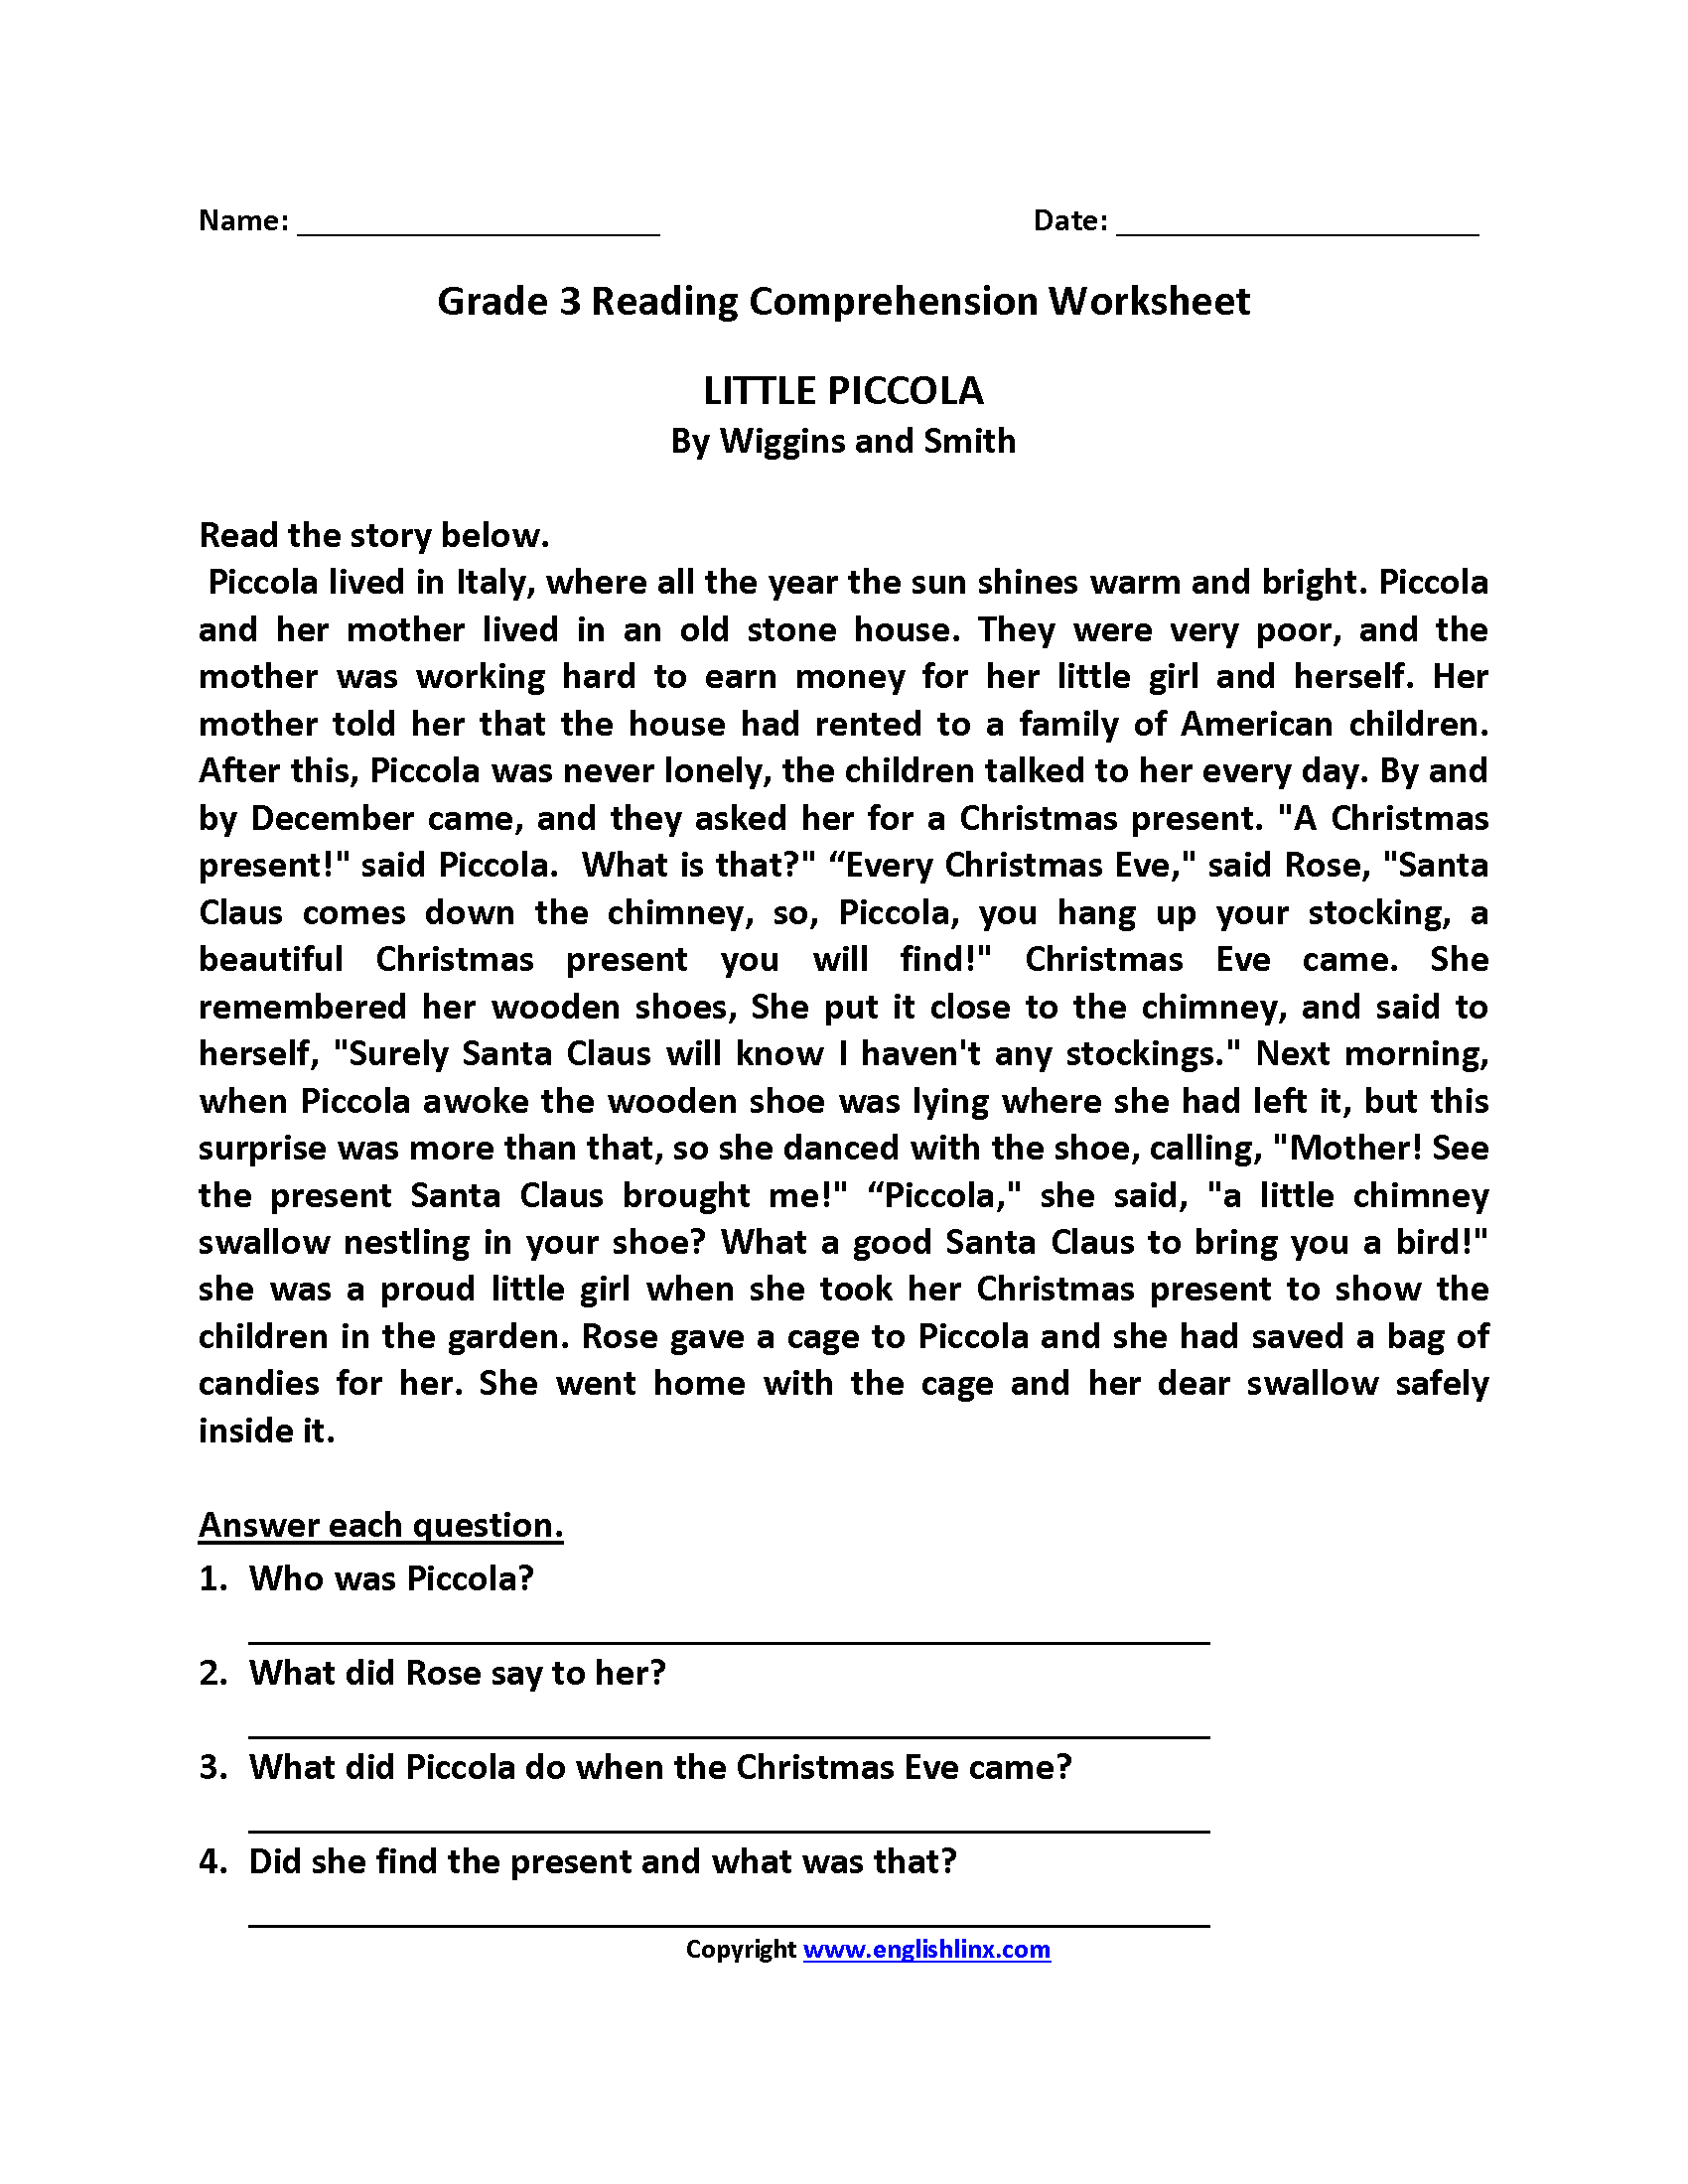 Little Piccola Third Grade Reading Worksheets